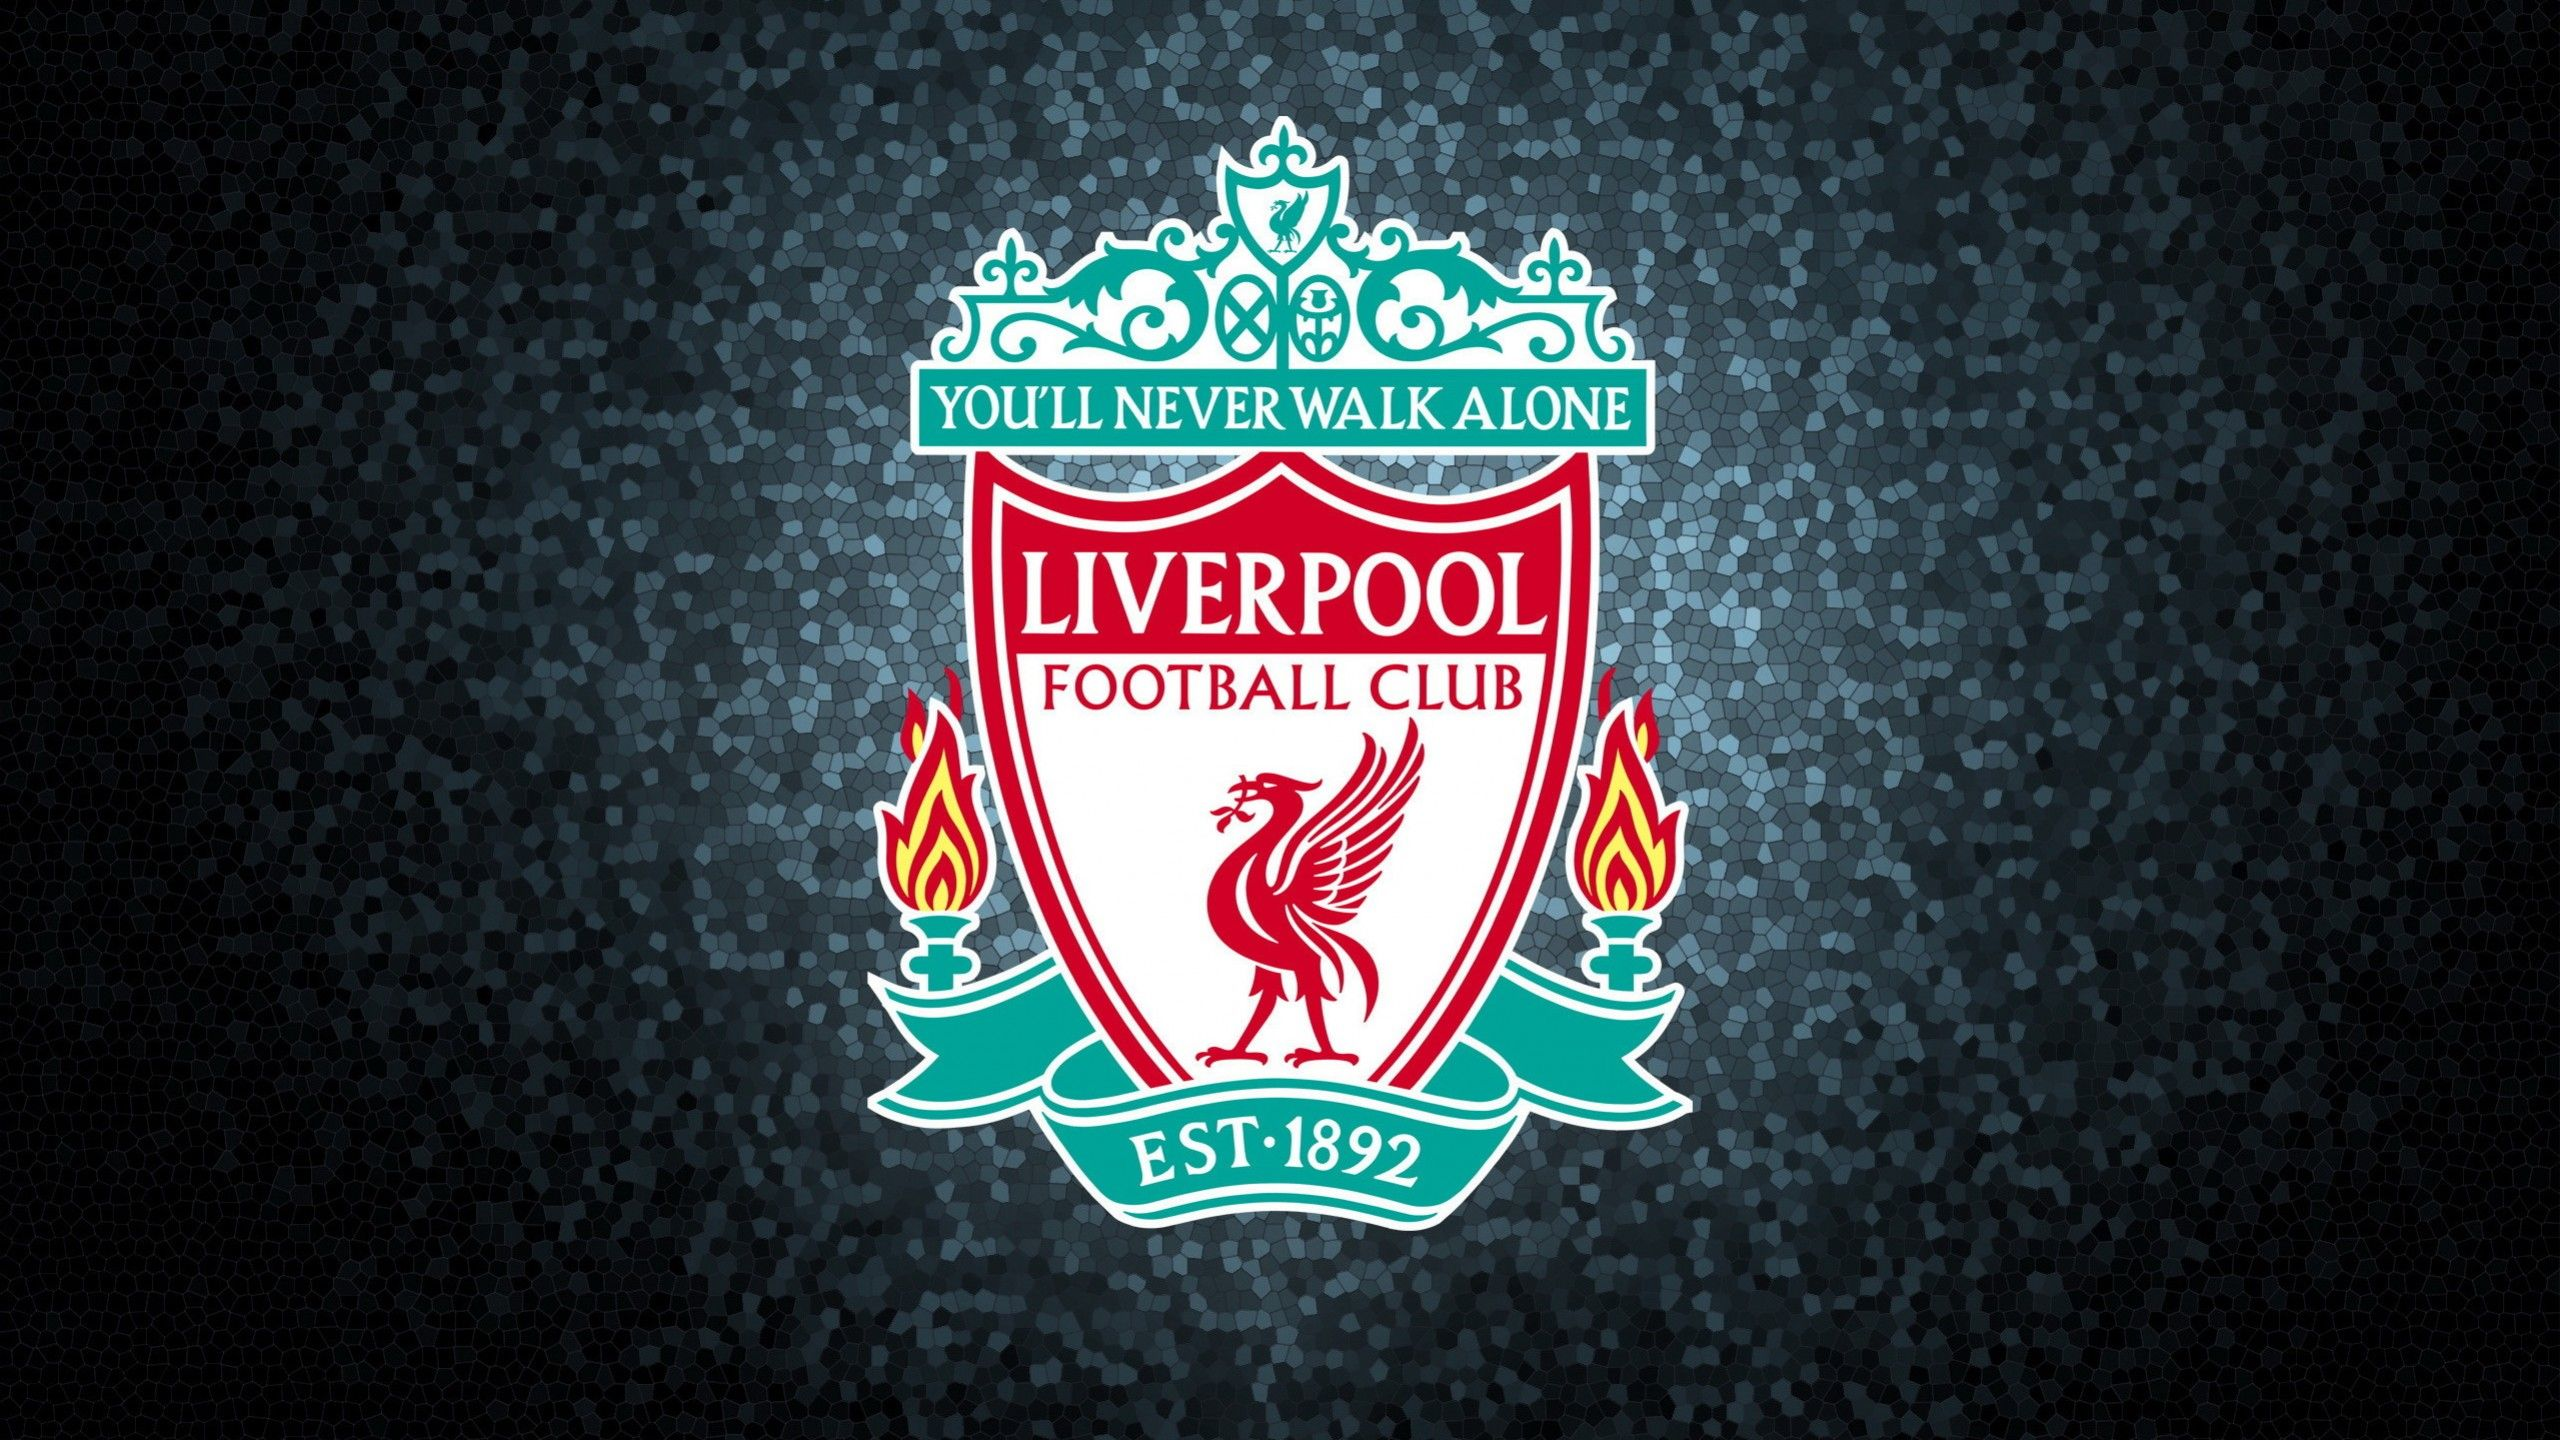 50 Liverpool Team HD Wallpapers   Download at WallpaperBro 2560x1440